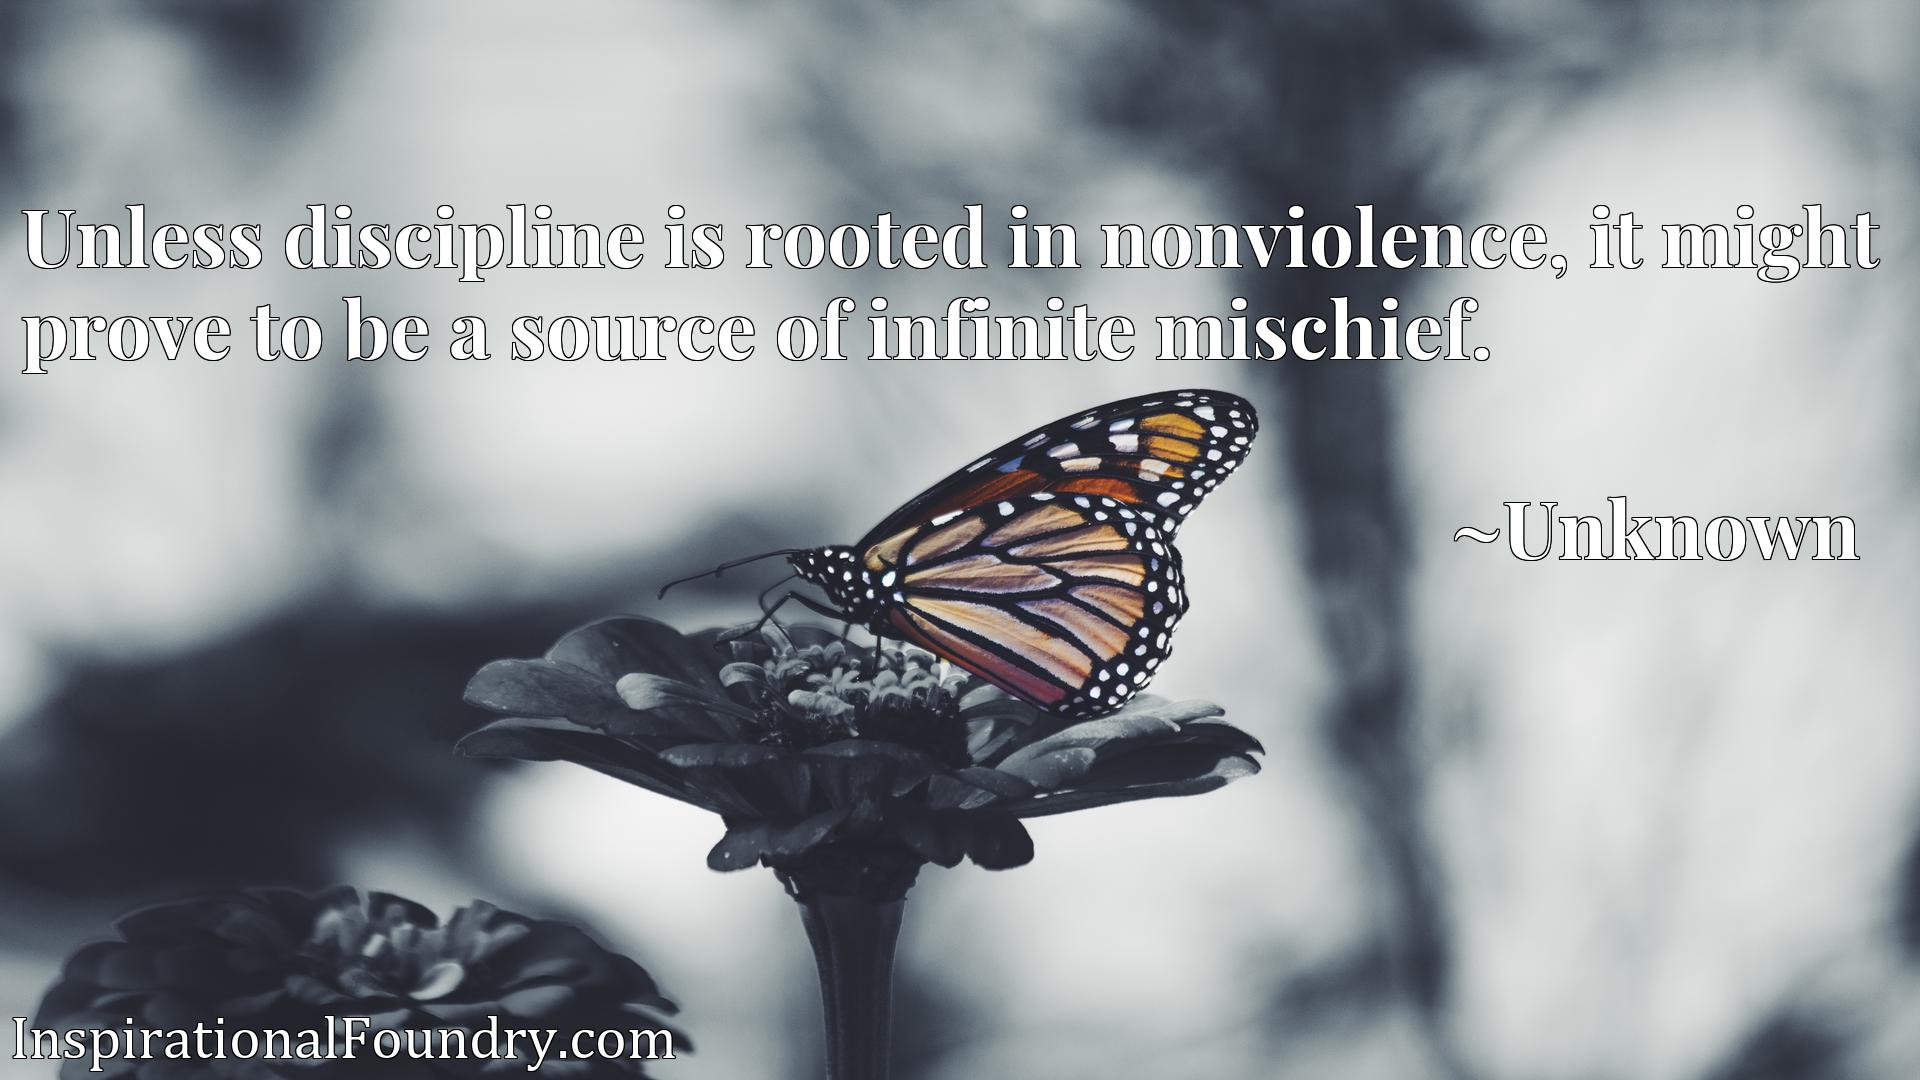 Quote Picture :Unless discipline is rooted in nonviolence, it might prove to be a source of infinite mischief.